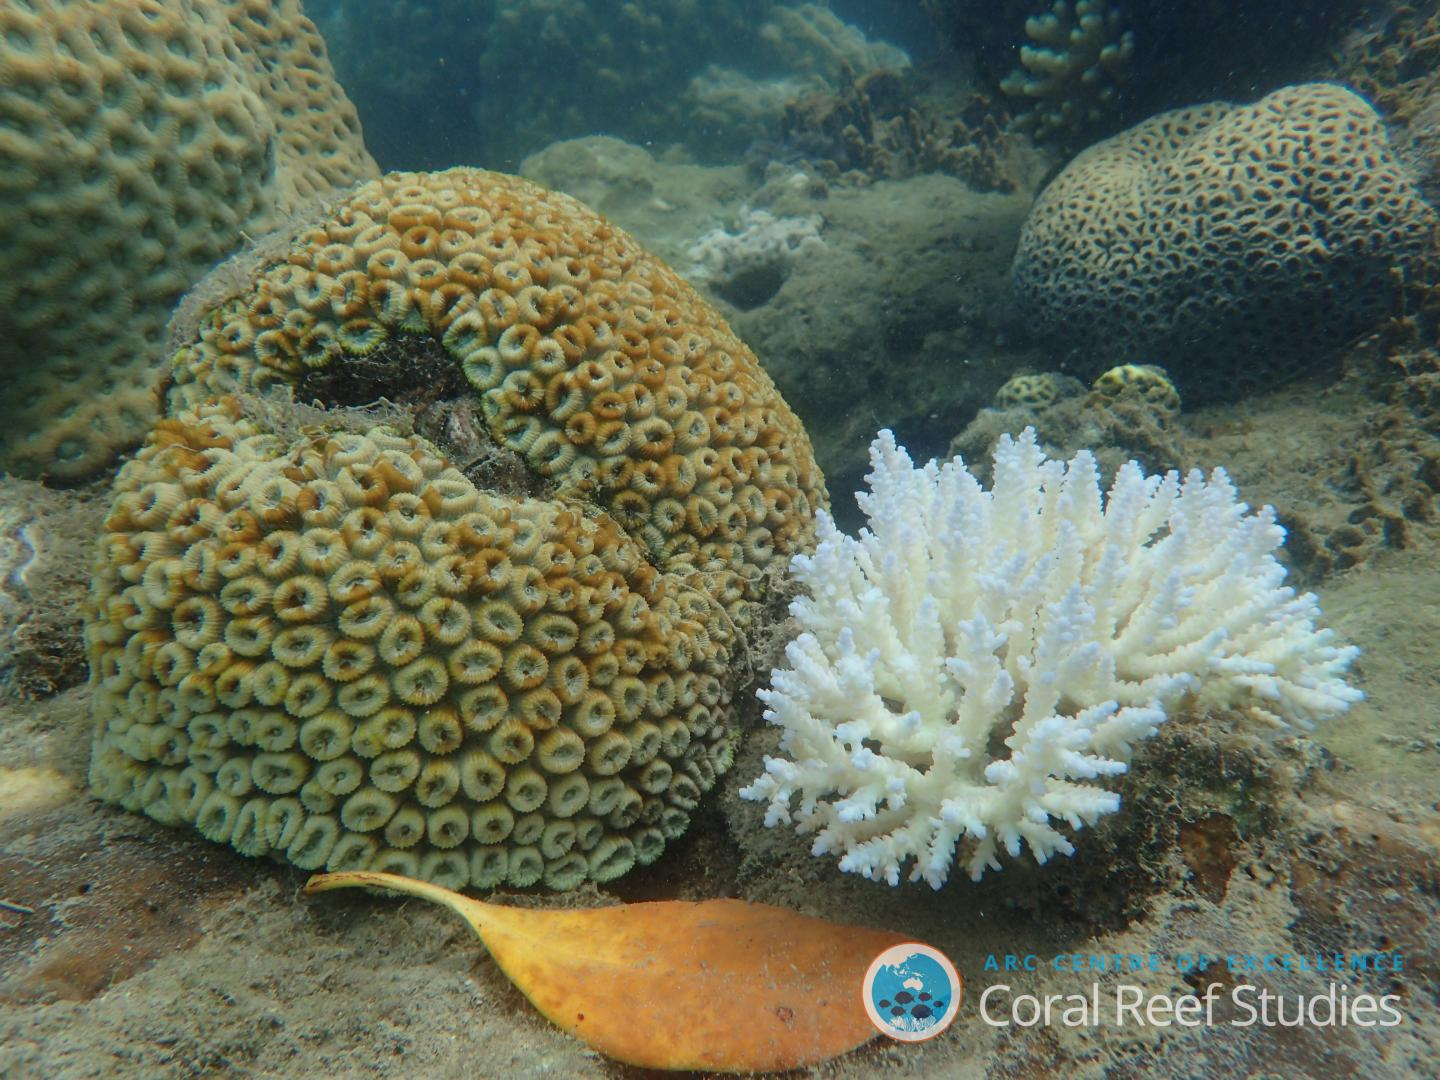 One of These Corals is Not Like the Others